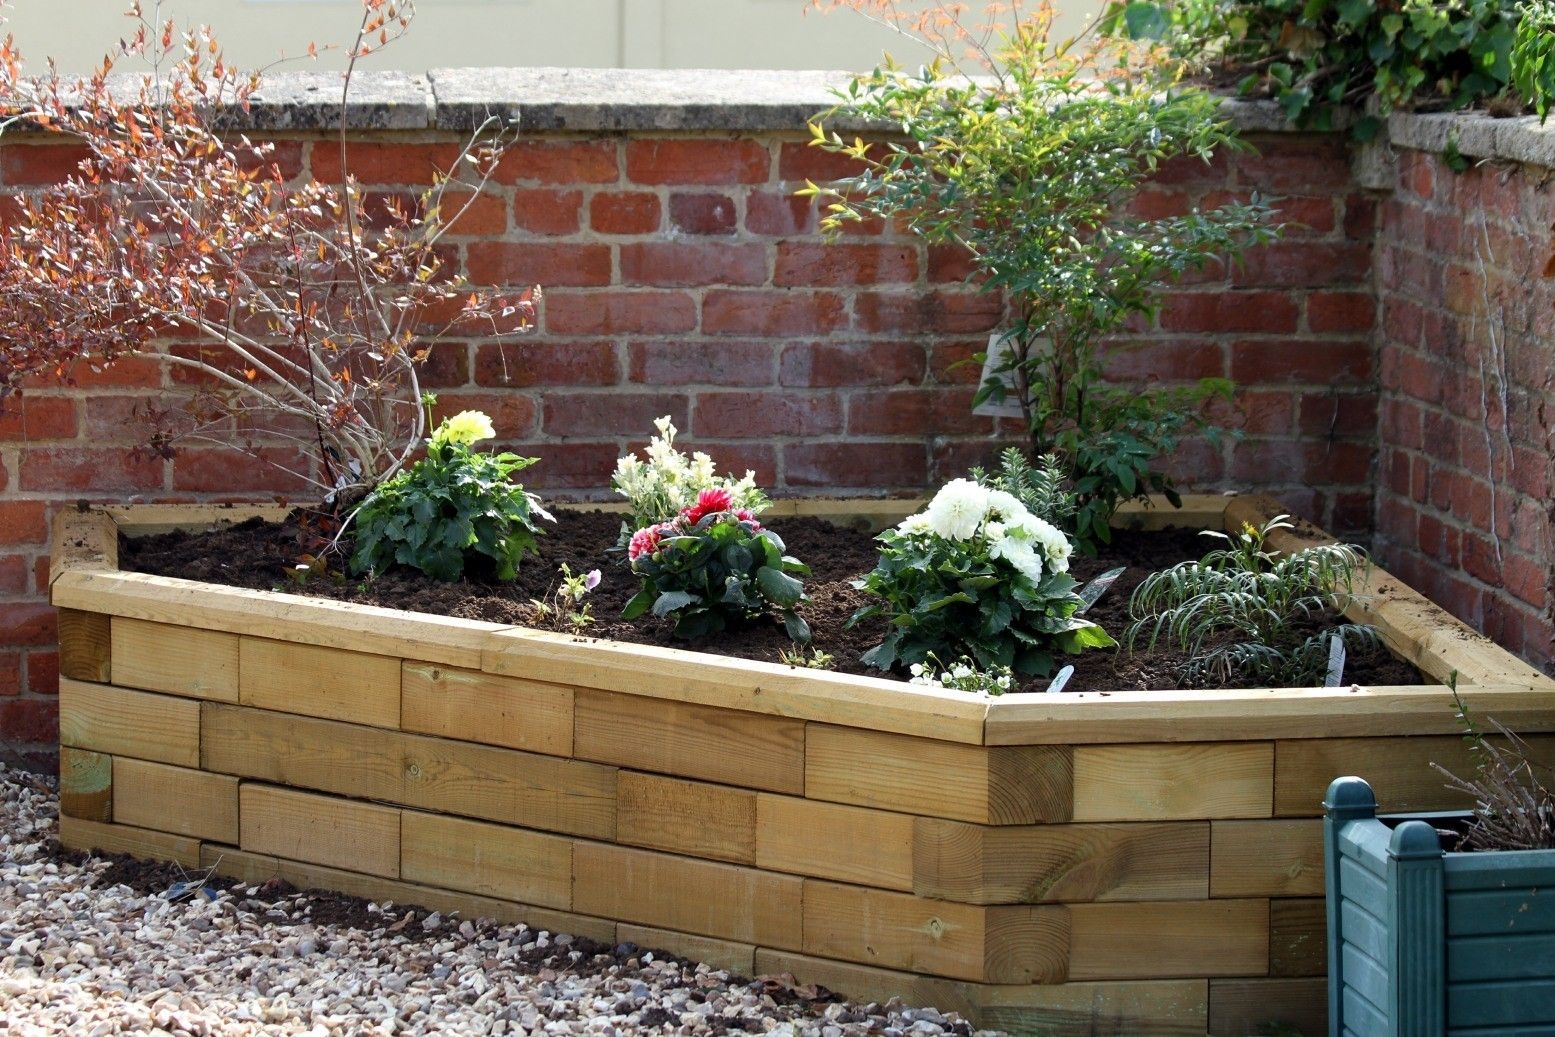 Raised Corner Bed Deep Enough For Small Trees Shrubs Or Climbers 1500x1500x450mm Raised Garden Wood Garden Edging Pallet Projects Garden